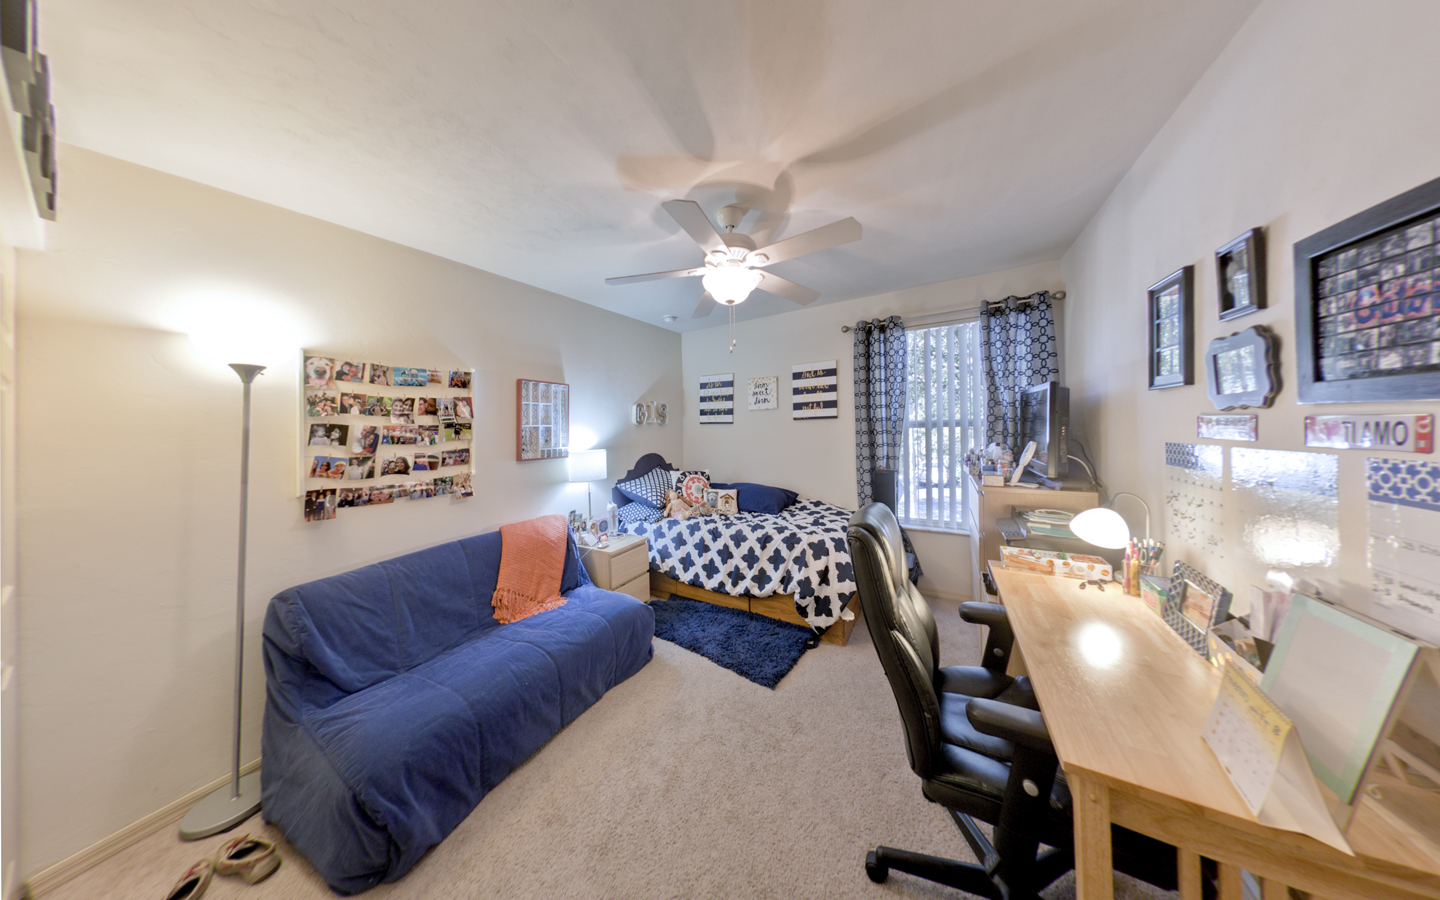 Windsor Hall Single Dorm Rooms Vs Univeristy Of Florida Single Dorms Rooms